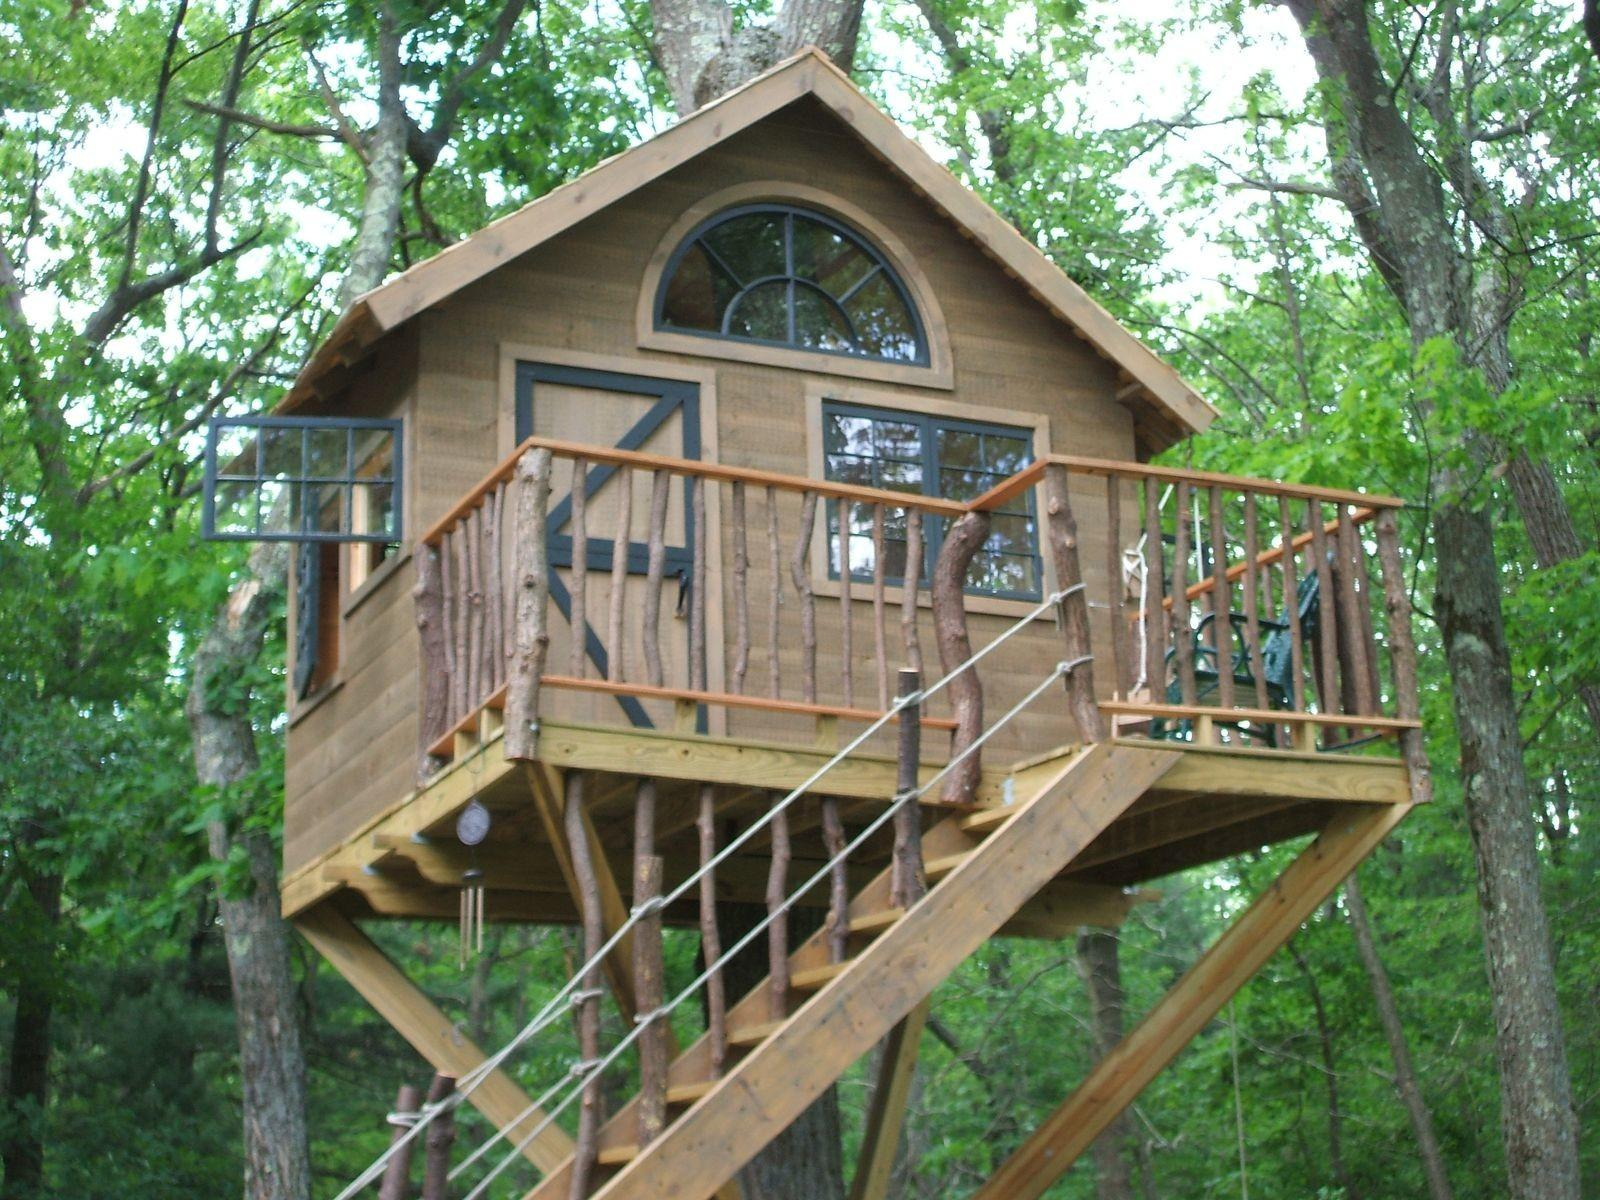 Handmade Whimsical Treehouse Wooden Hammer Llc